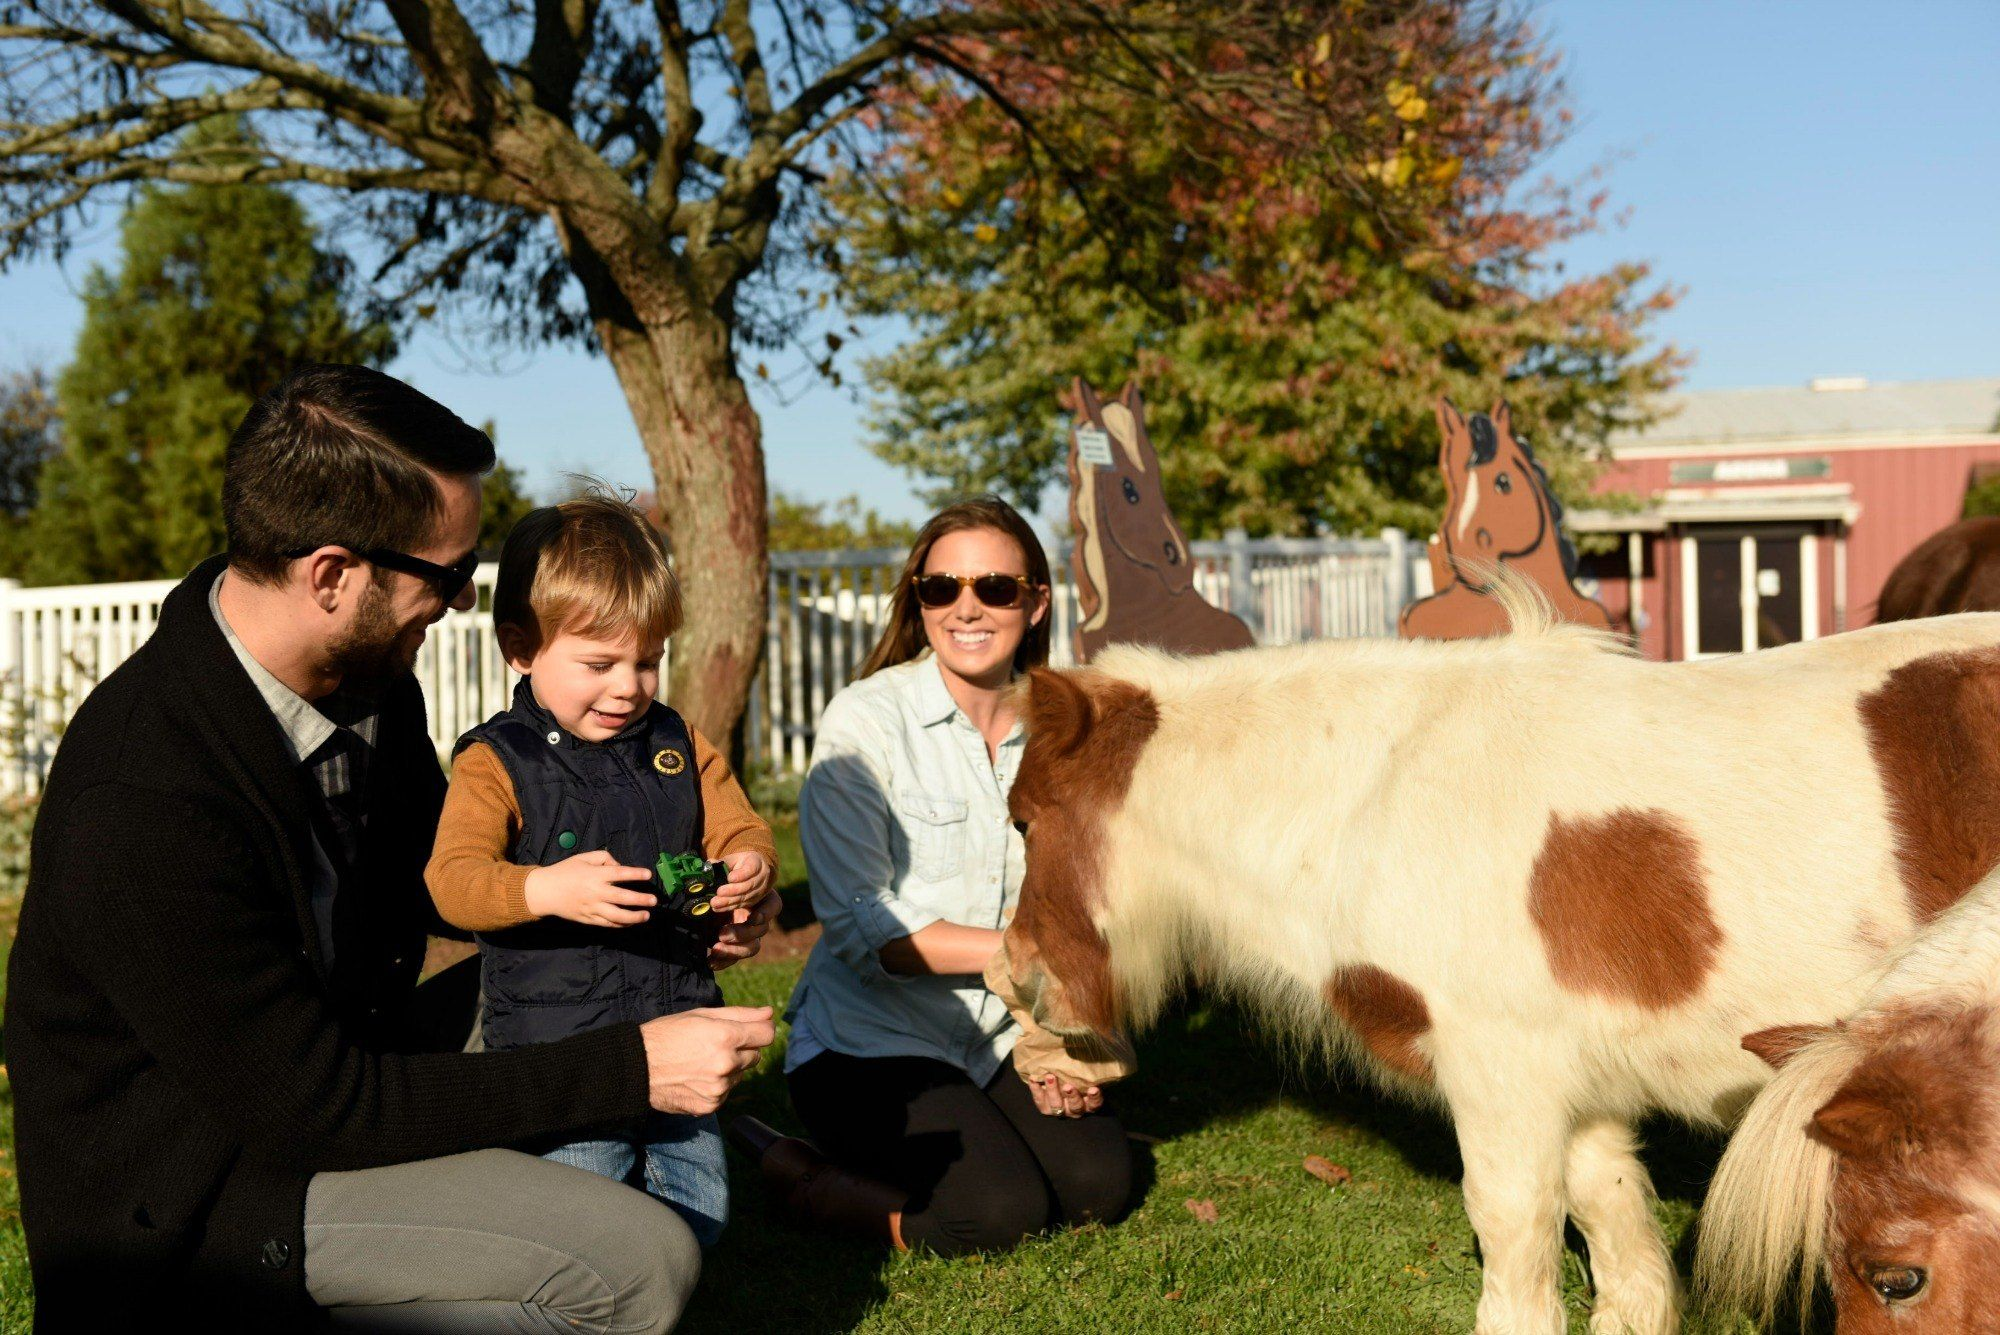 Families can have animal interactions in Gettysburg, PA.